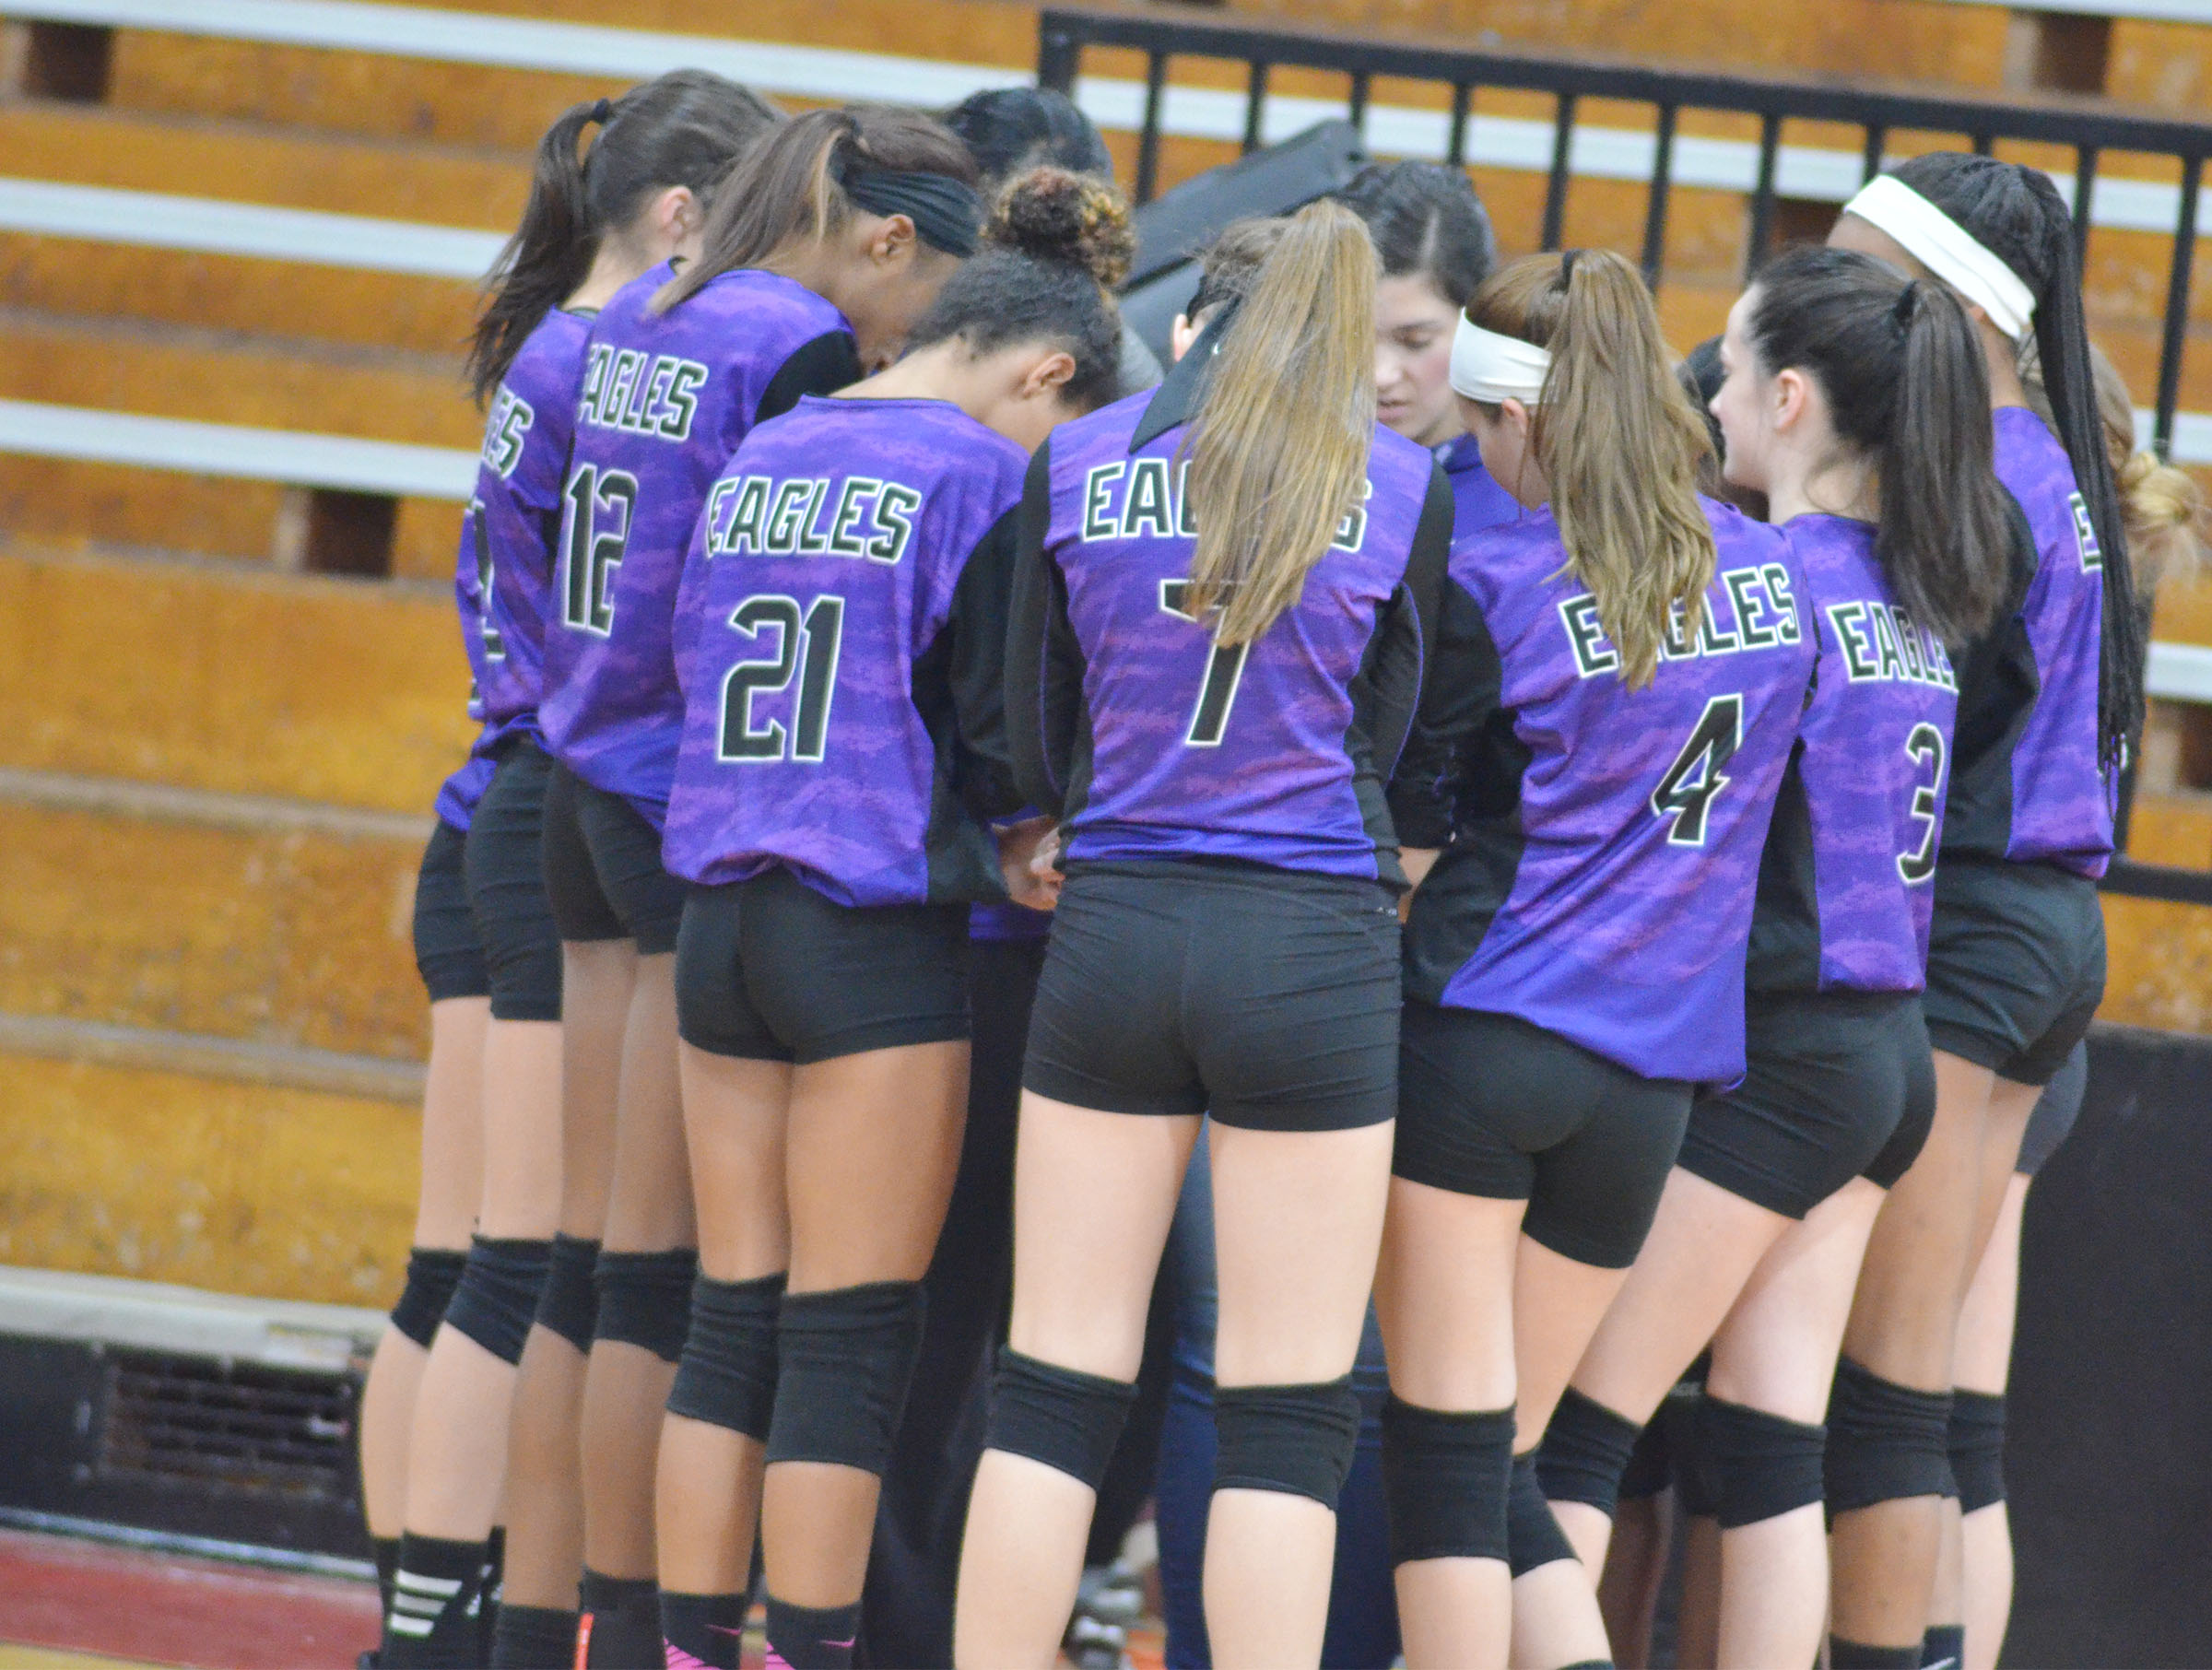 CMS volleyball players huddle before the game.